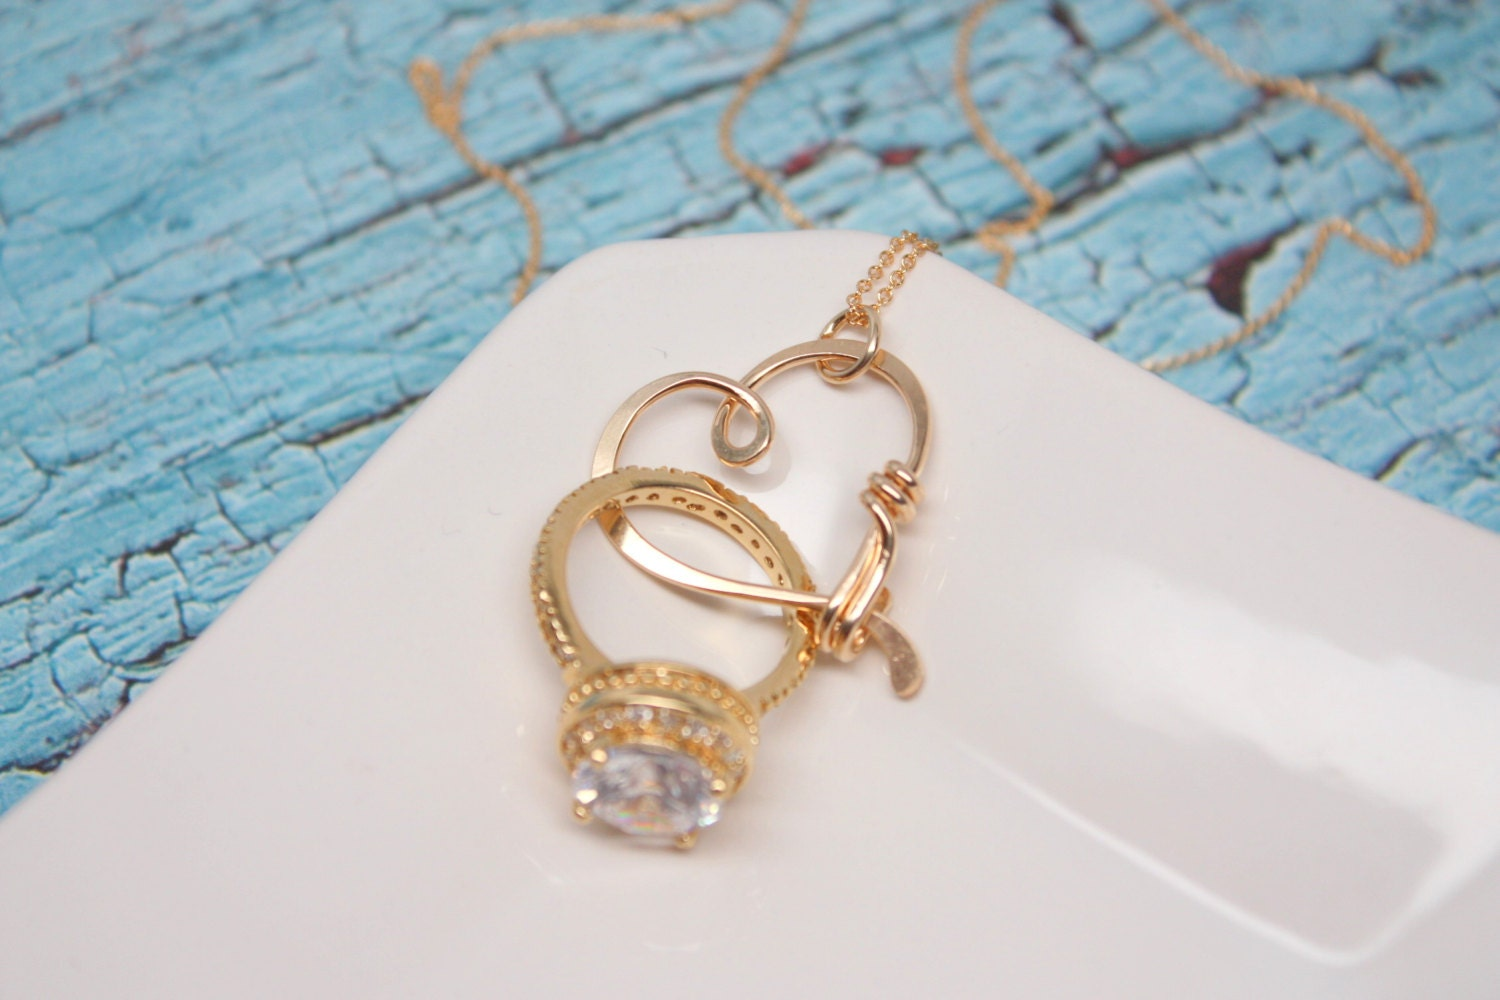 Heart Clasp Ring Holder Necklace Yellow Gold Filled Wedding